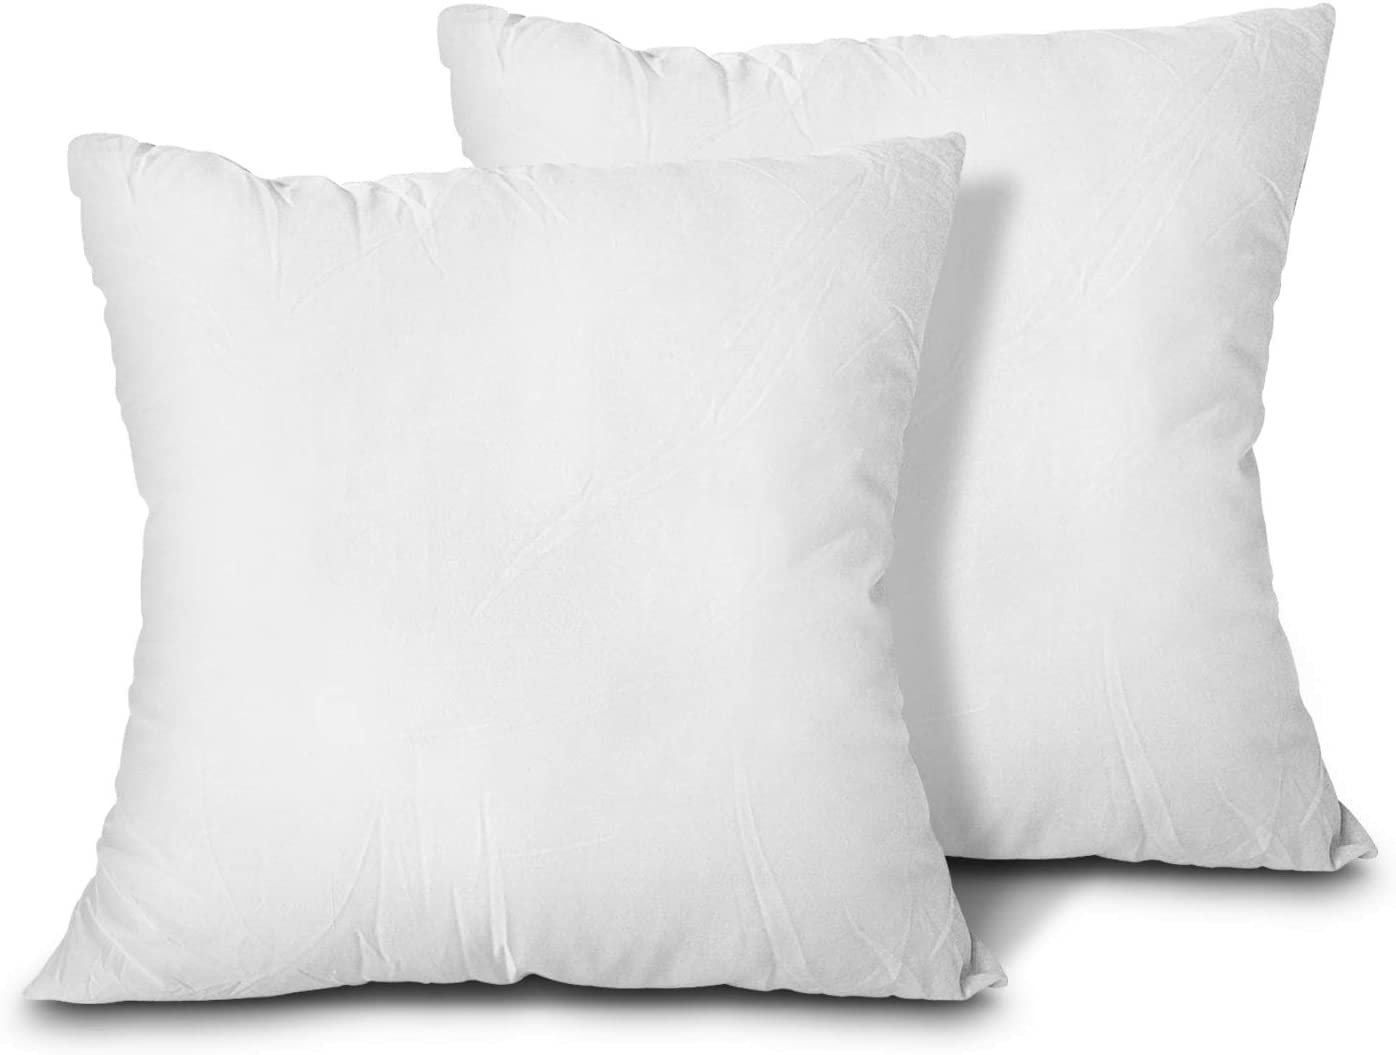 EDOW Throw Pillow Inserts, Set of 2 Lightweight Down Alternative Polyester Pillow, Couch Cushion, Sham Stuffer, Machine Washable. (White, 20x20)